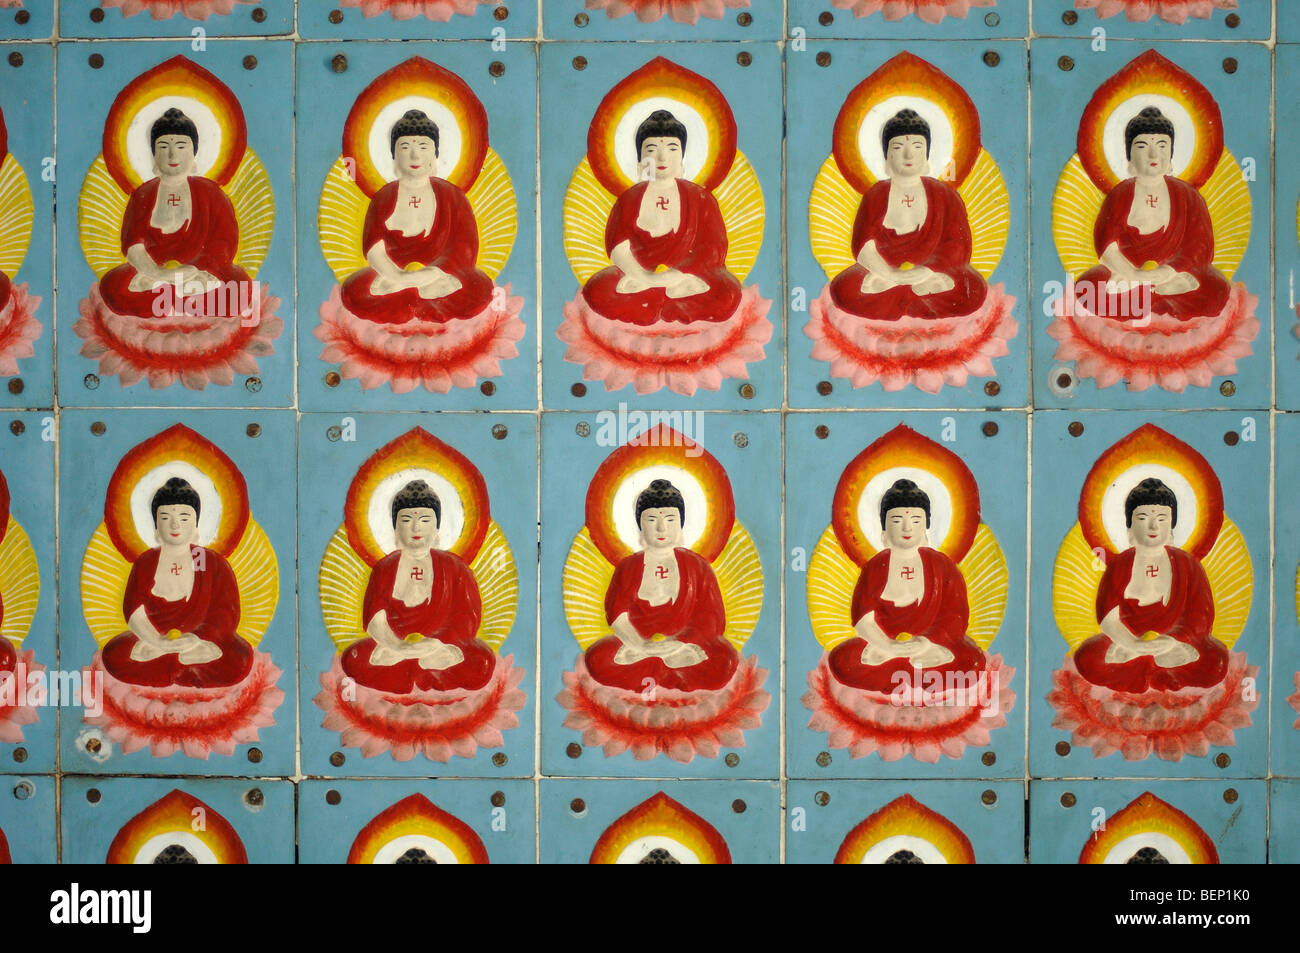 Ten Wall Tiles of Red & Yellow Seated or Sitting Buddhas at Kek Lok Si Chinese Temple Penang Malaysia - Stock Image